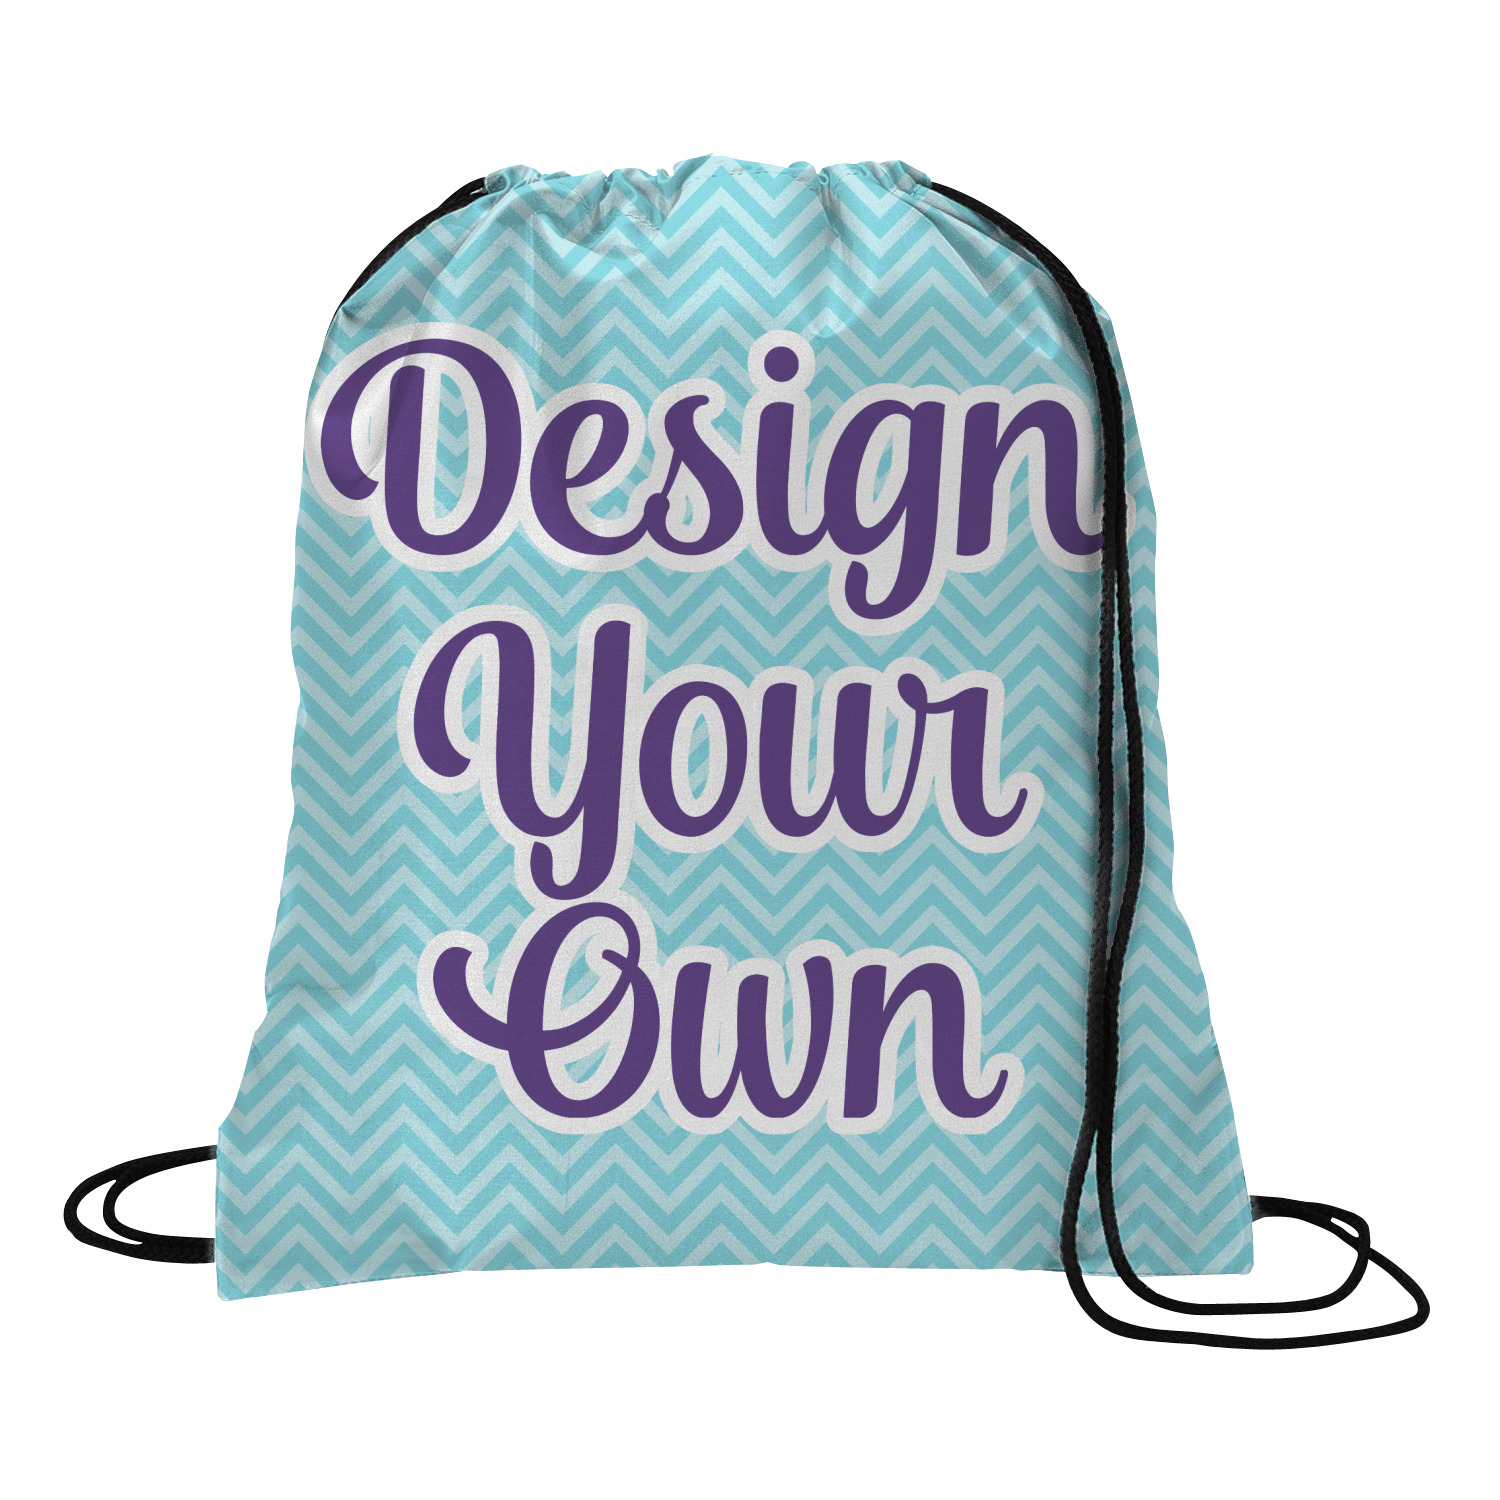 fc86d6ecc6d5 Design Your Own Personalized Drawstring Backpack